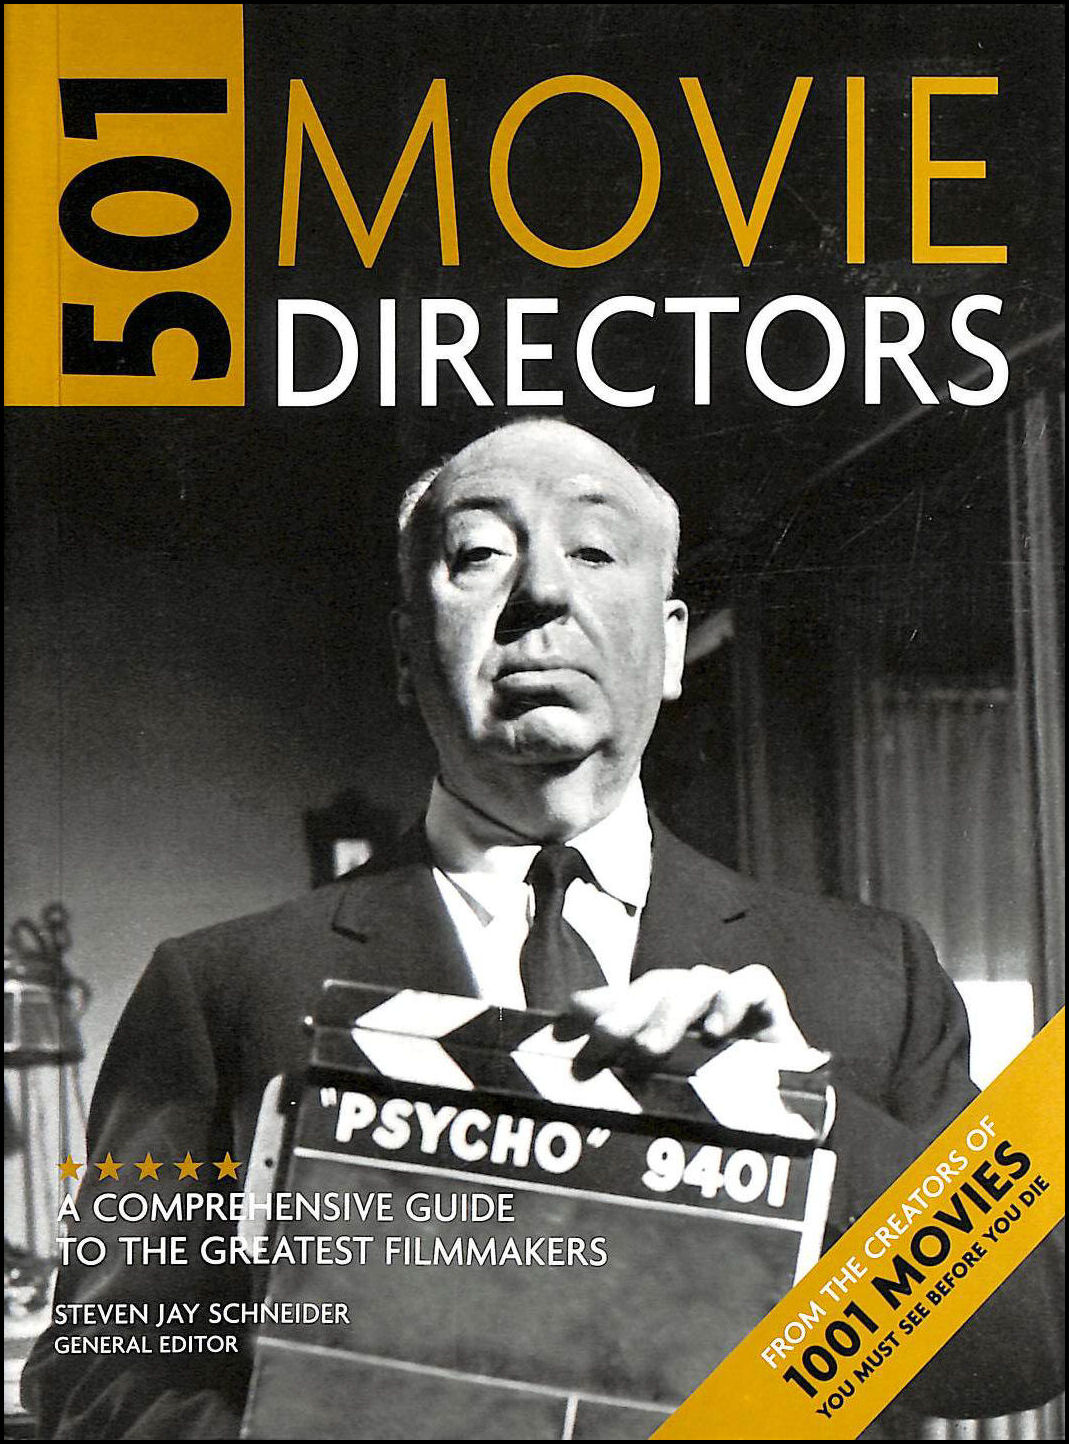 501 Movie Directors: An A-Z Guide To The Greatest Movie Directors, Jay Schneider, Steven [Editor]